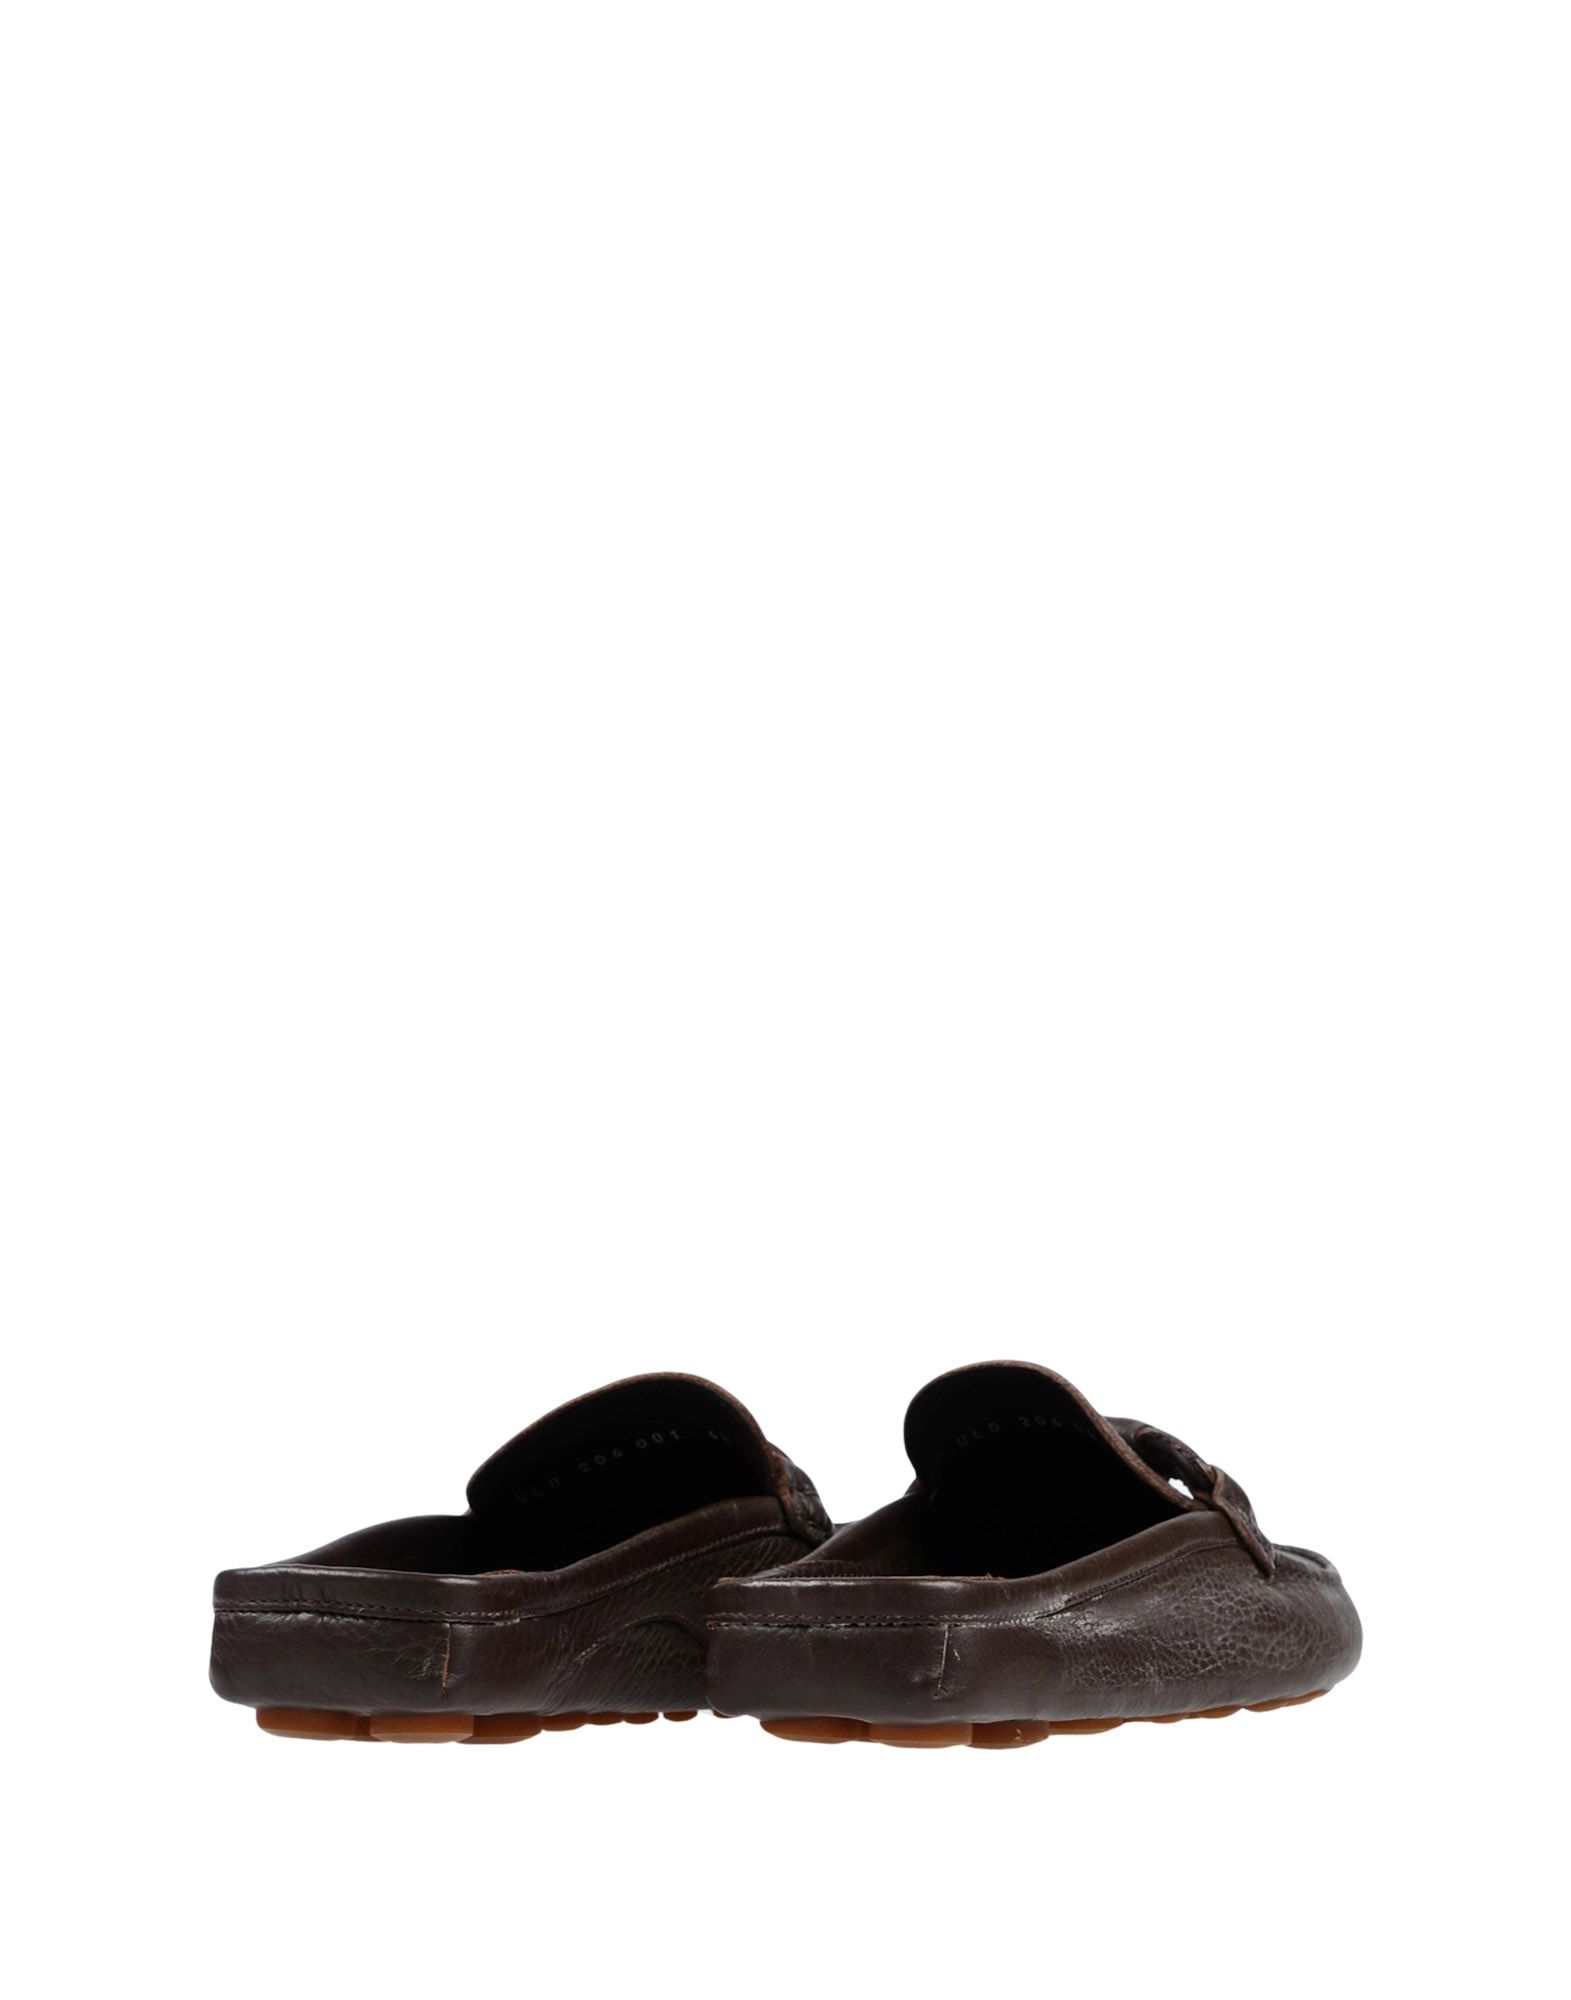 Chaussons Sergio Rossi Homme - Chaussons Sergio Rossi sur